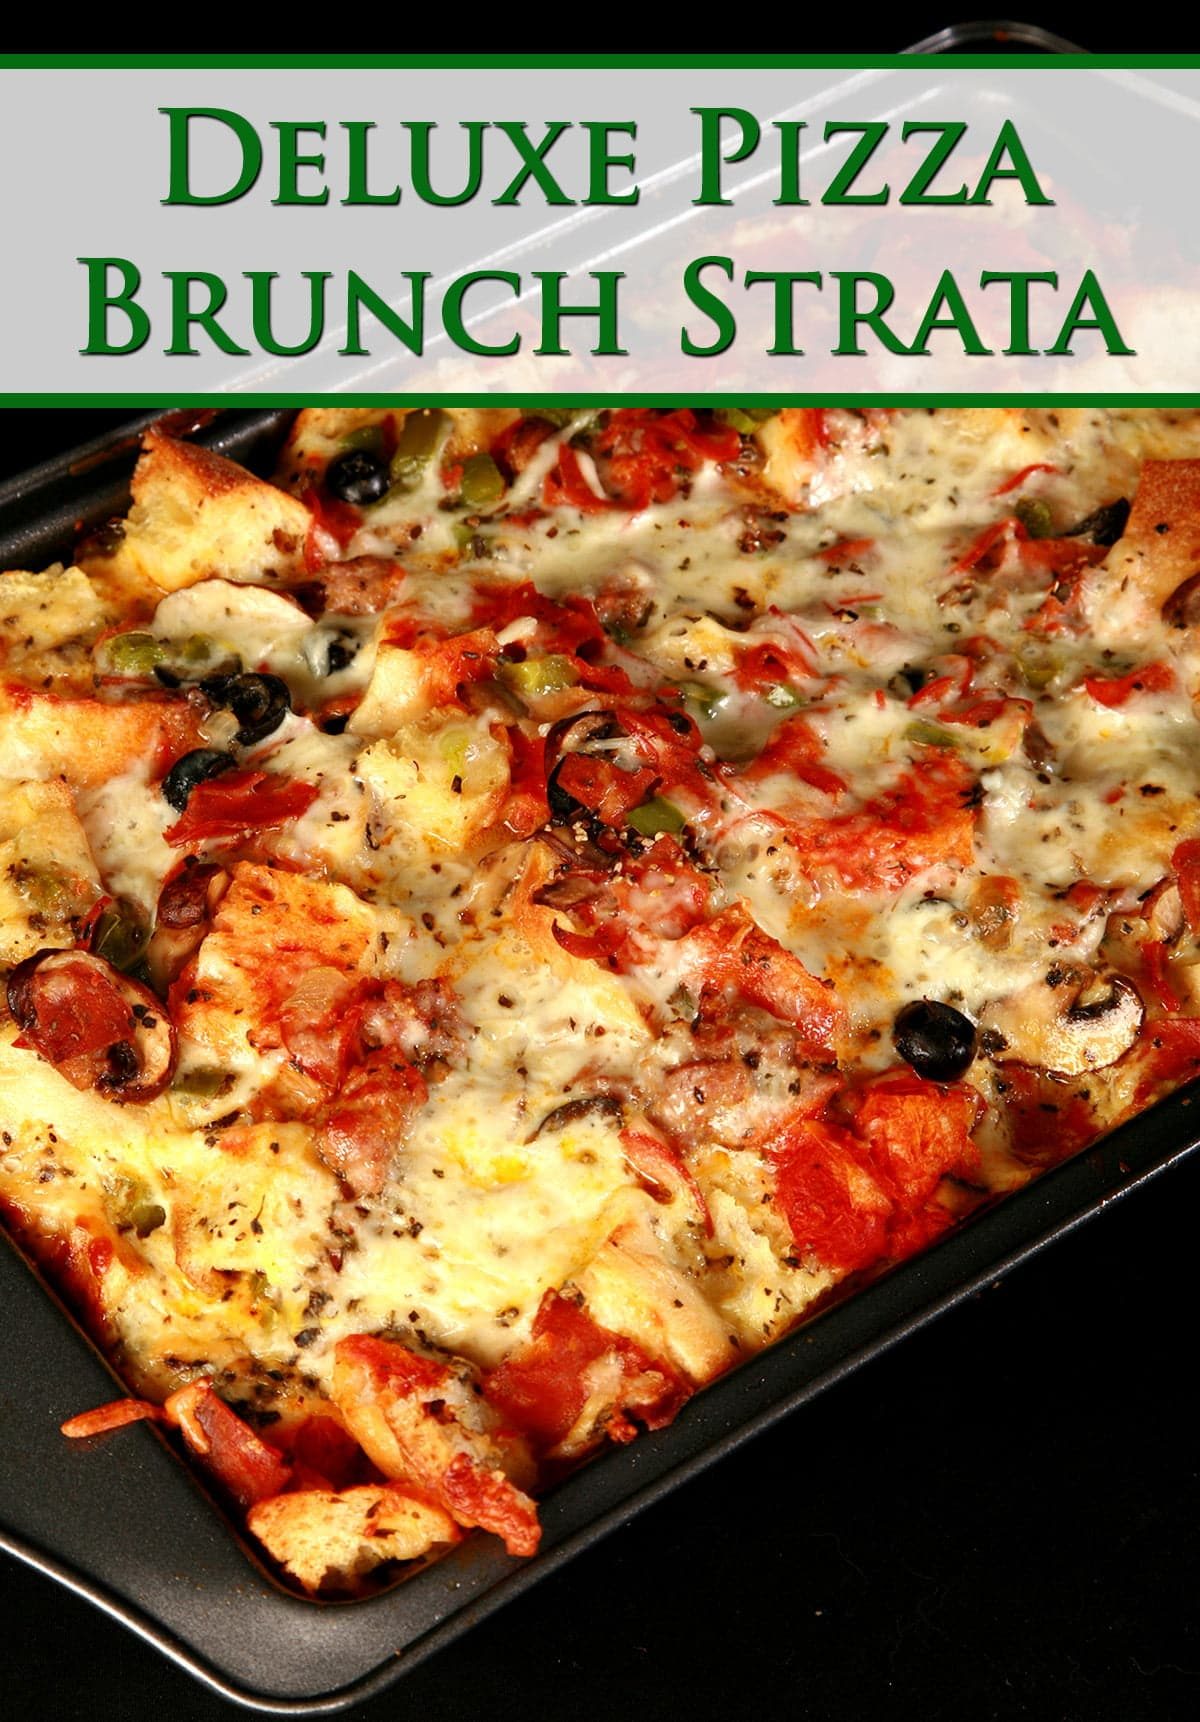 A pan of deluxe pizza strata: A brunch casserole featuring pepperoni, sausage, mushrooms, green peppers, black olives, marinara sauce, and cheese.